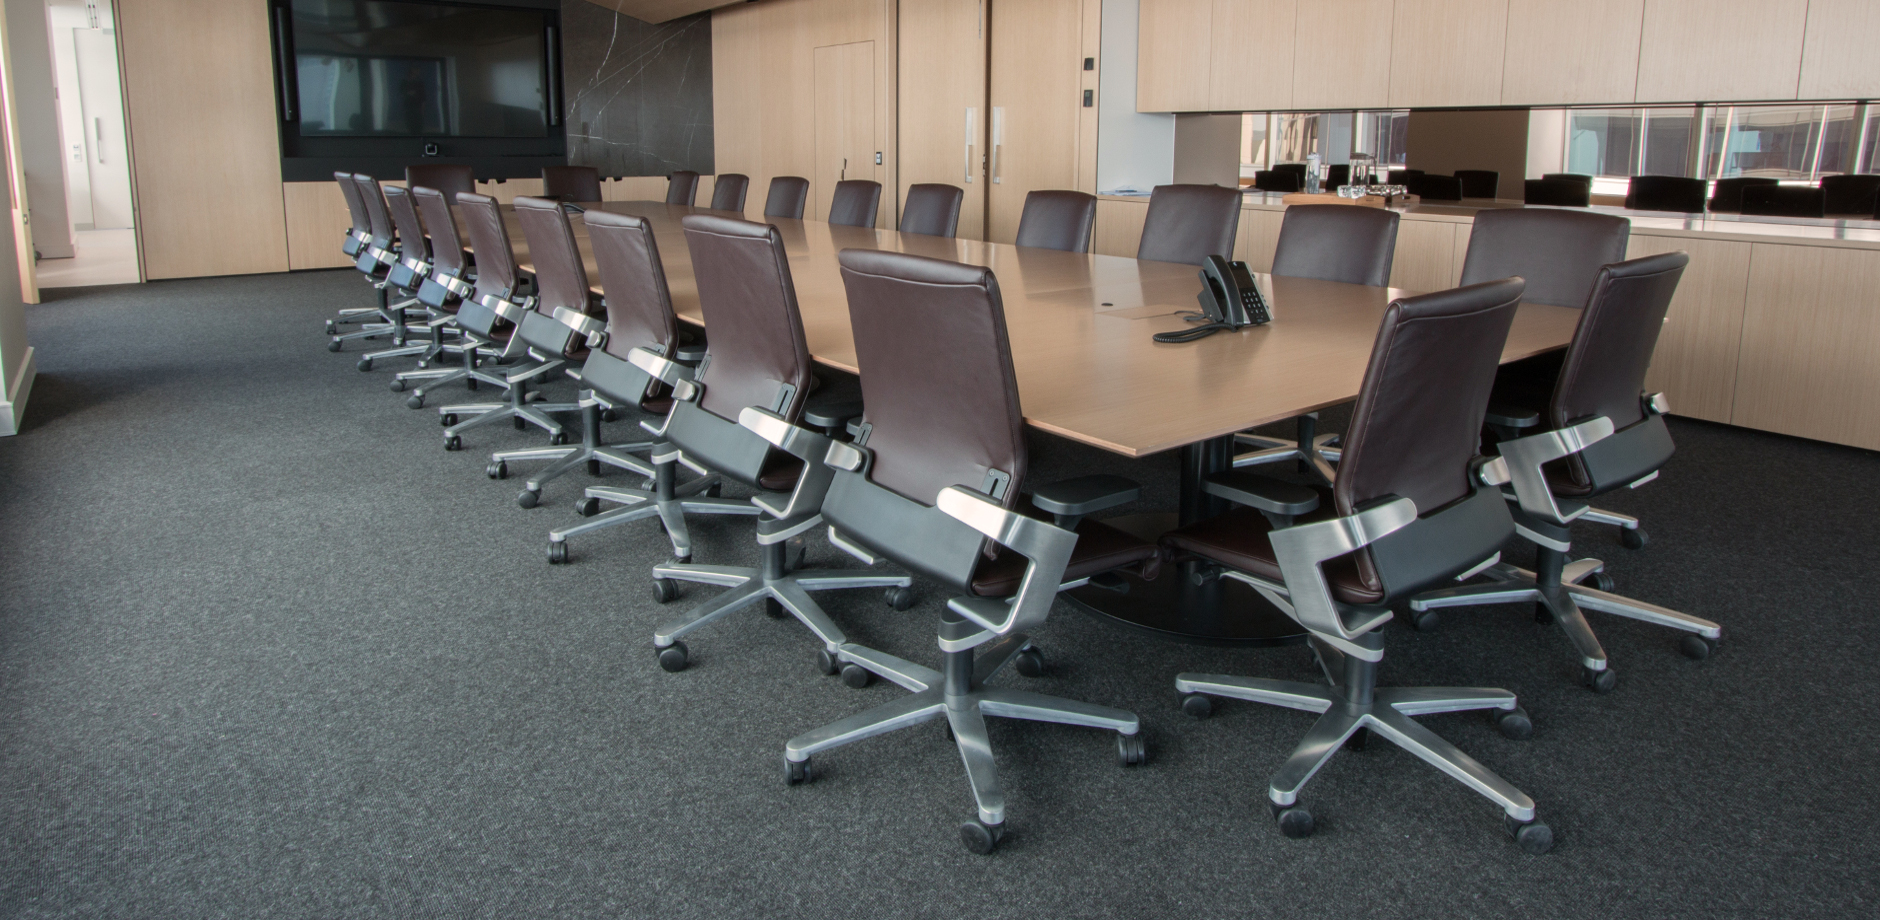 Conference Room - Office FurnitureConference Room - Office Furniture